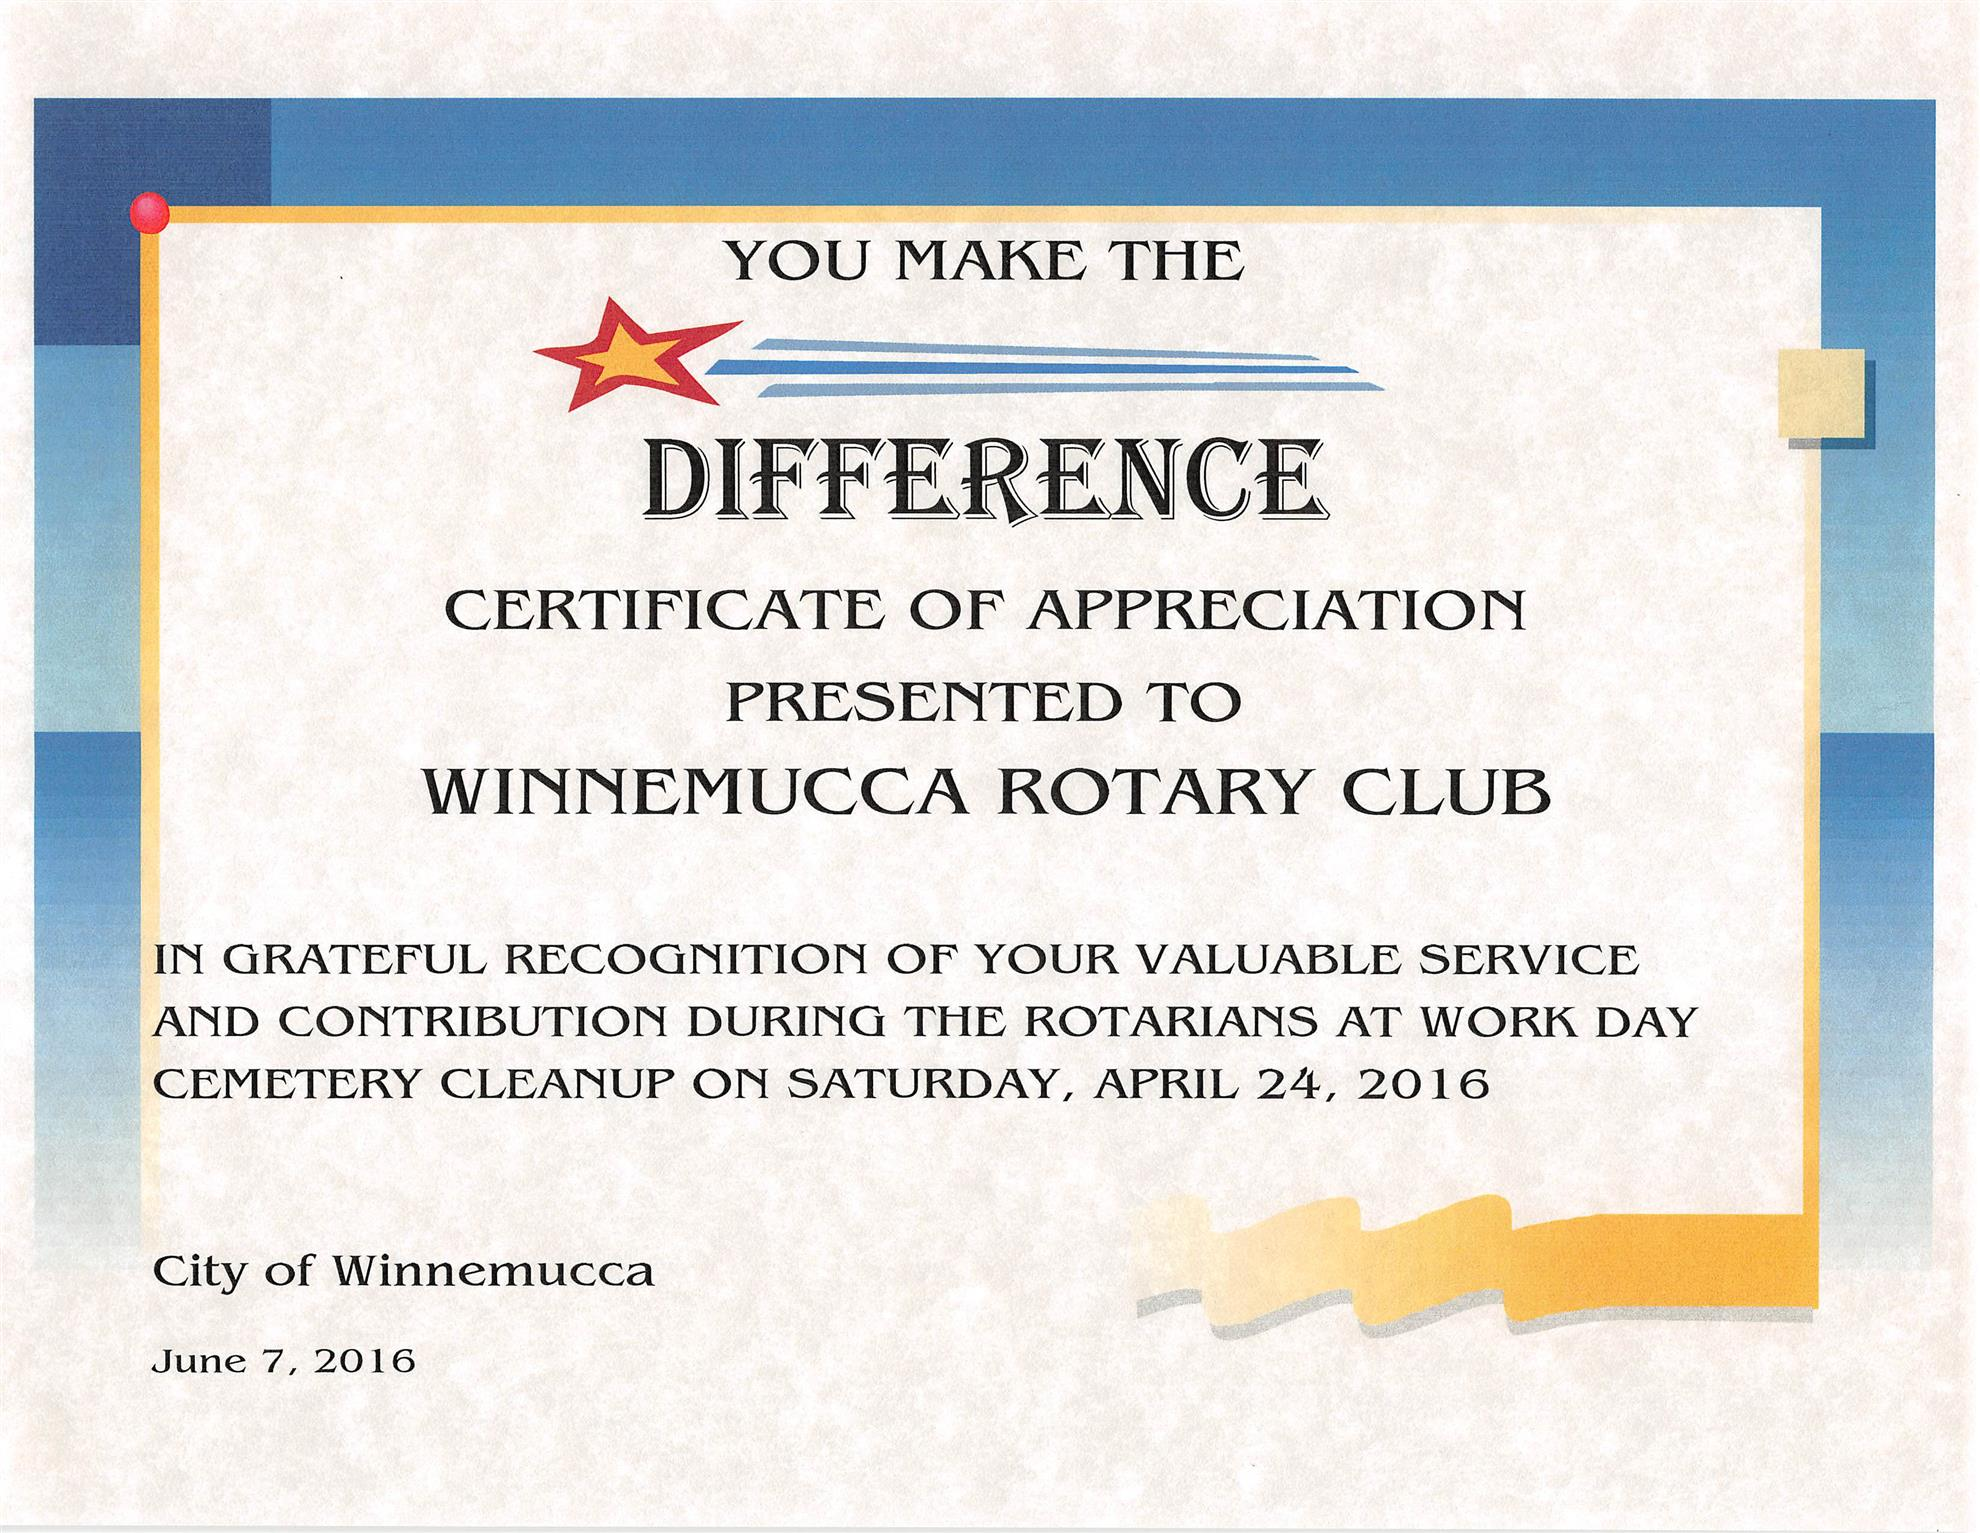 rotary certificate of appreciation template - home page rotary club of winnemucca